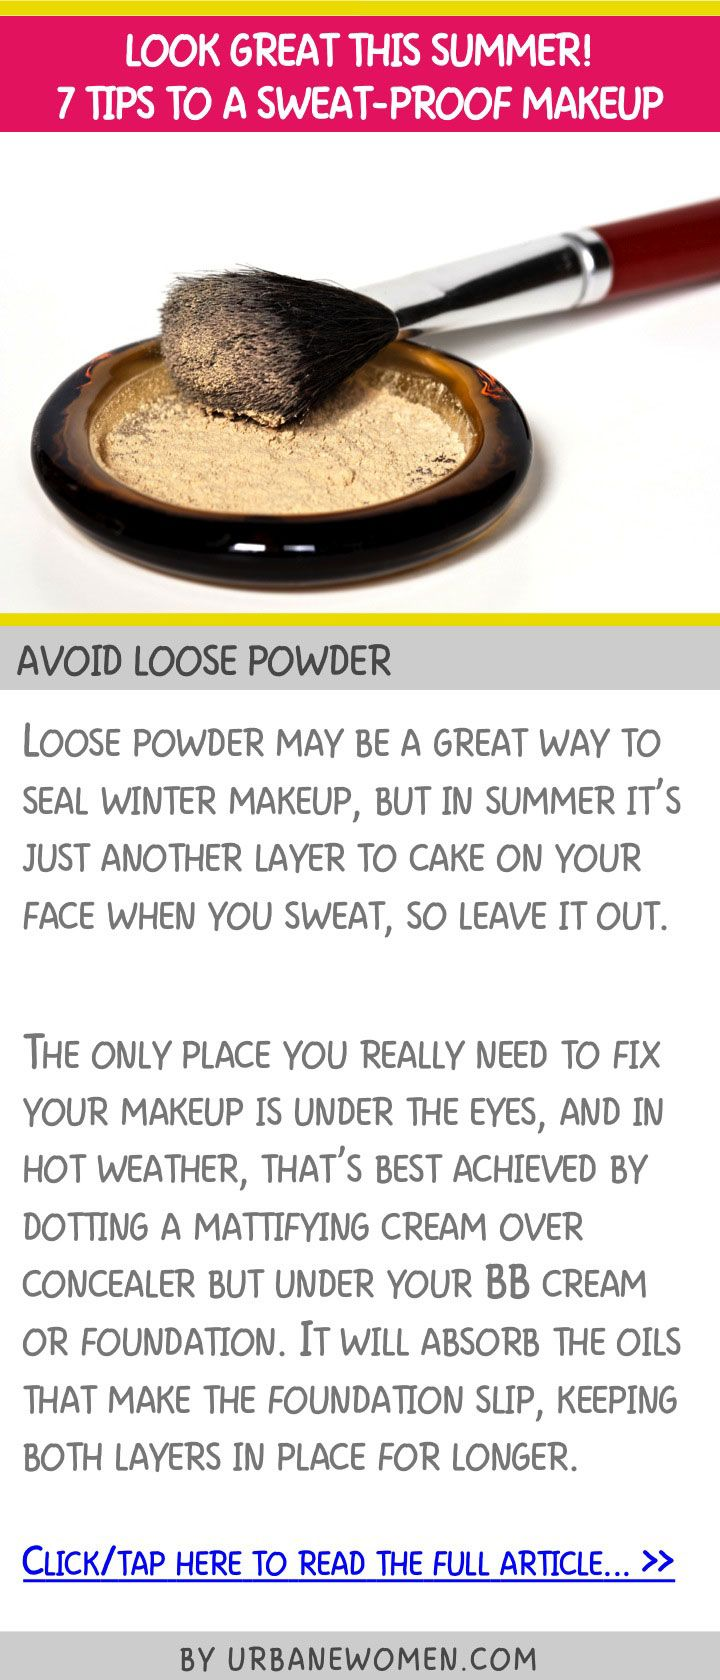 Look great this summer! 7 tips to a sweat-proof makeup - Avoid loose powder